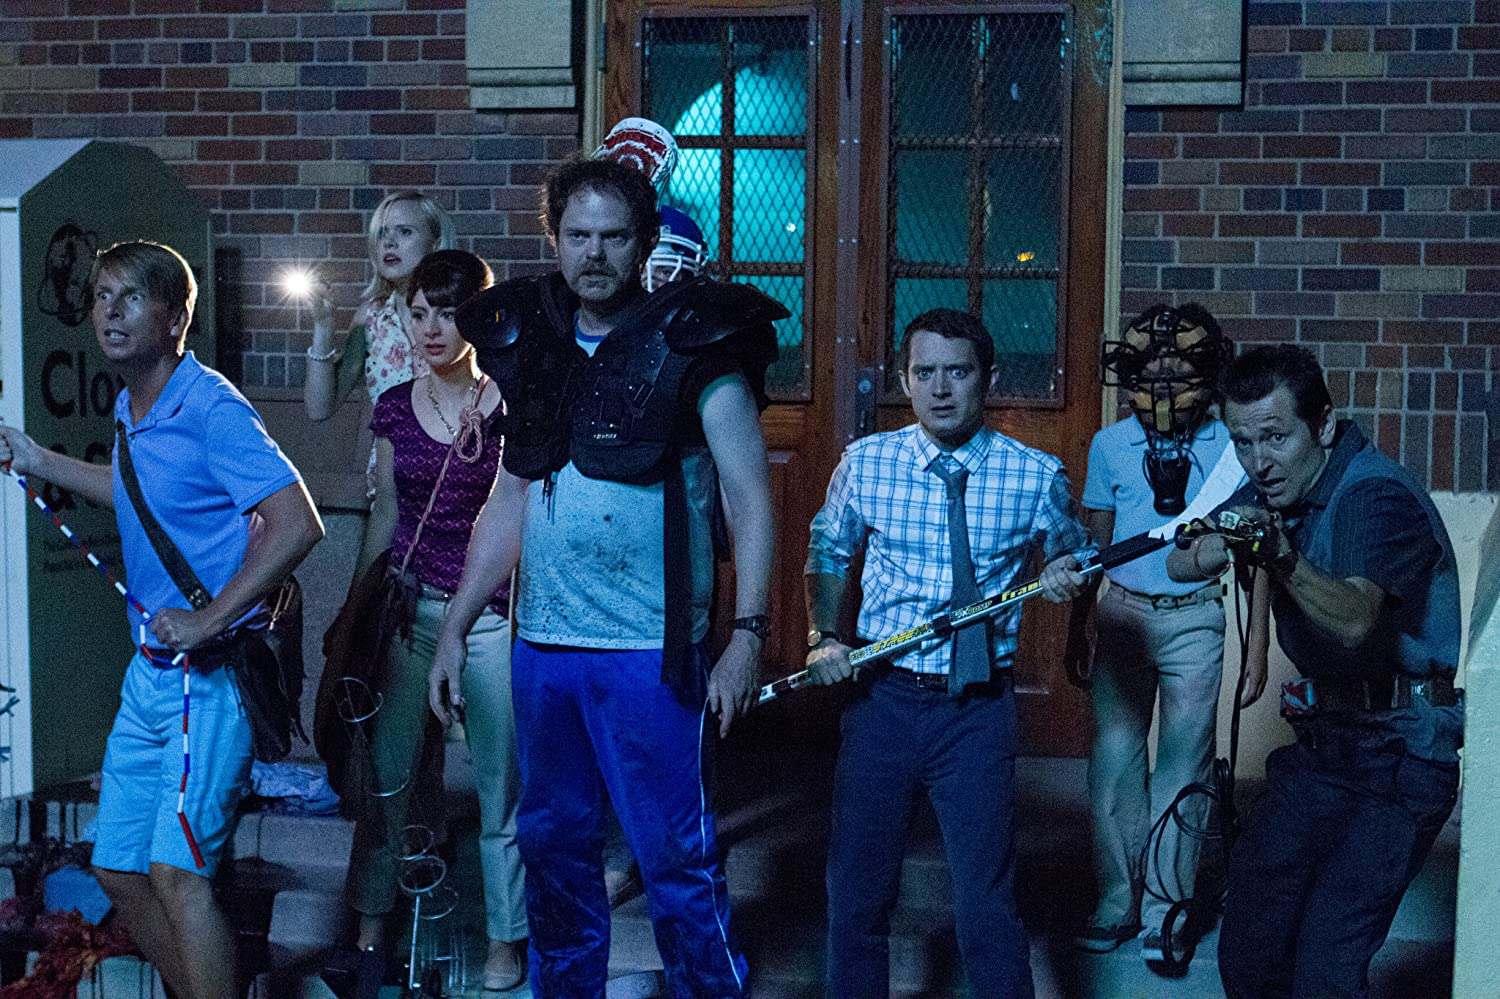 Elijah Wood, Alison Pill, Rainn Wilson, Leigh Whannell, Jack McBrayer, and Nasim Pedrad in Cooties (2014)